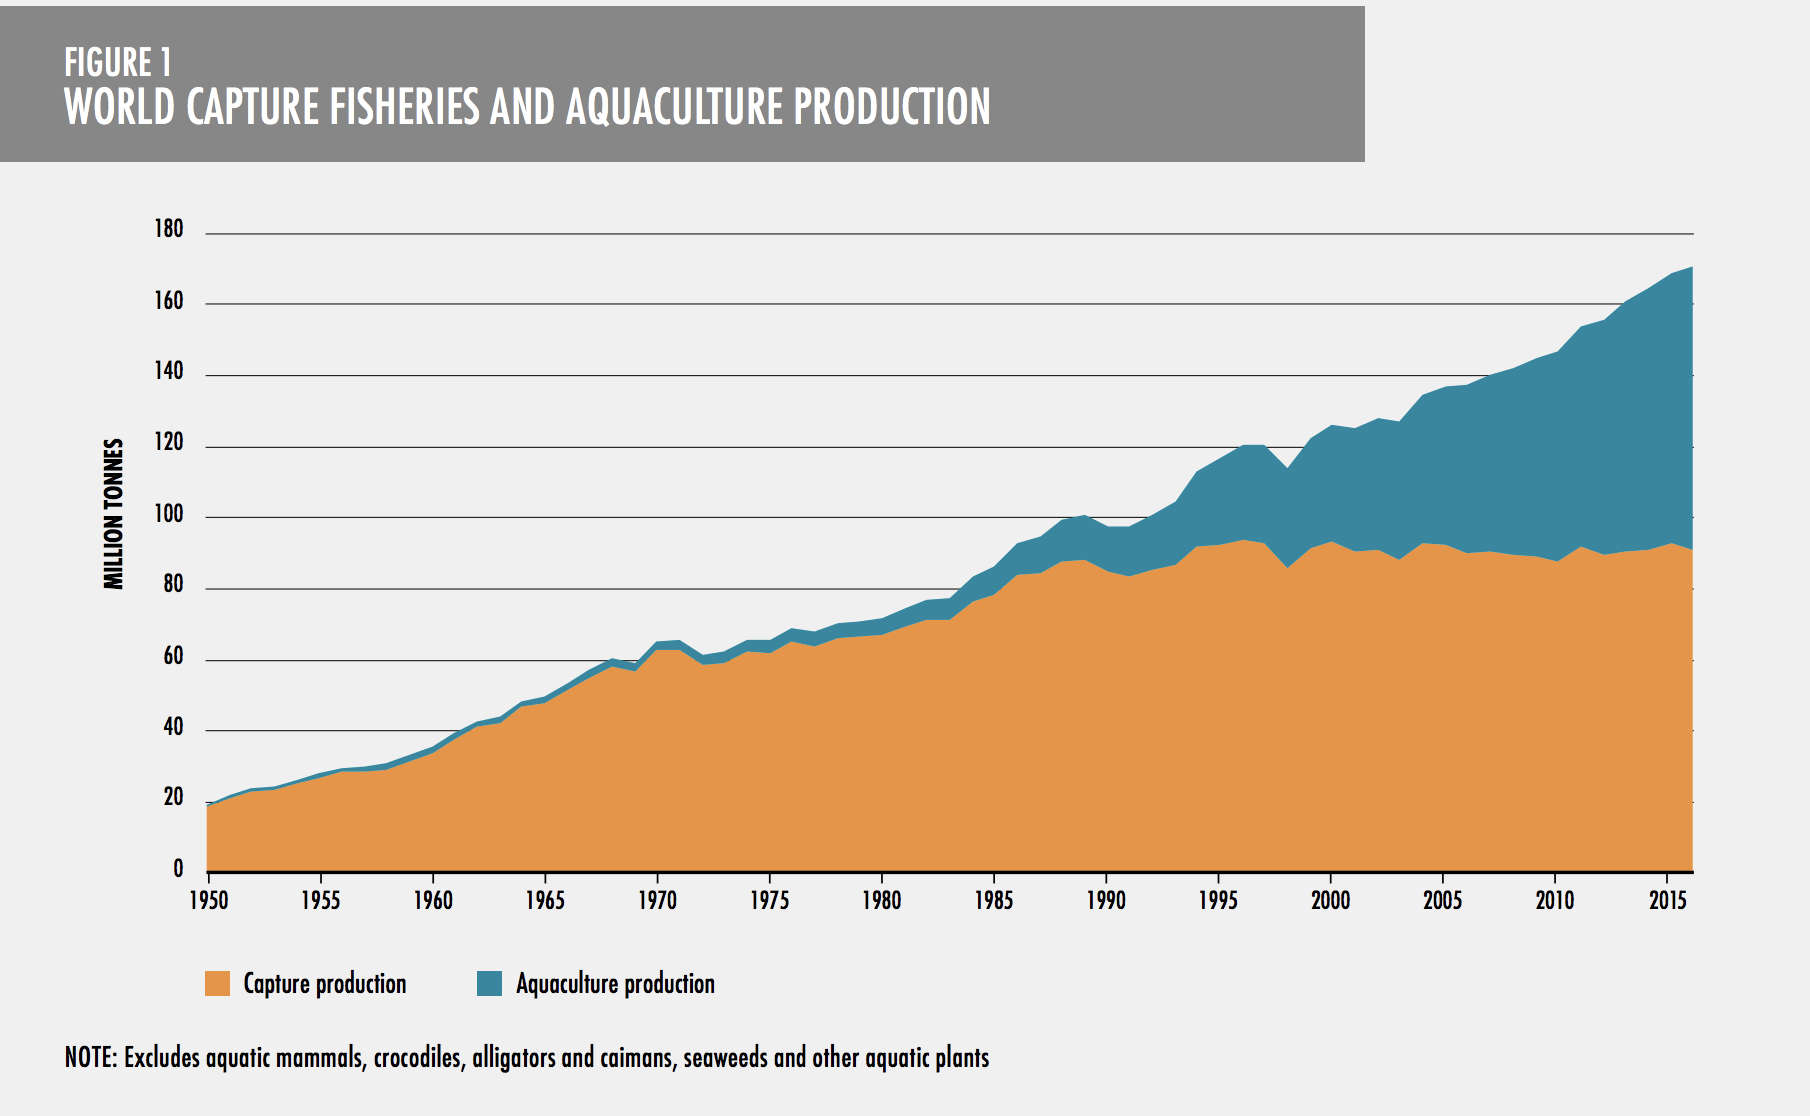 Aquaculture is about to overtake fishing as our primary source of watery protein